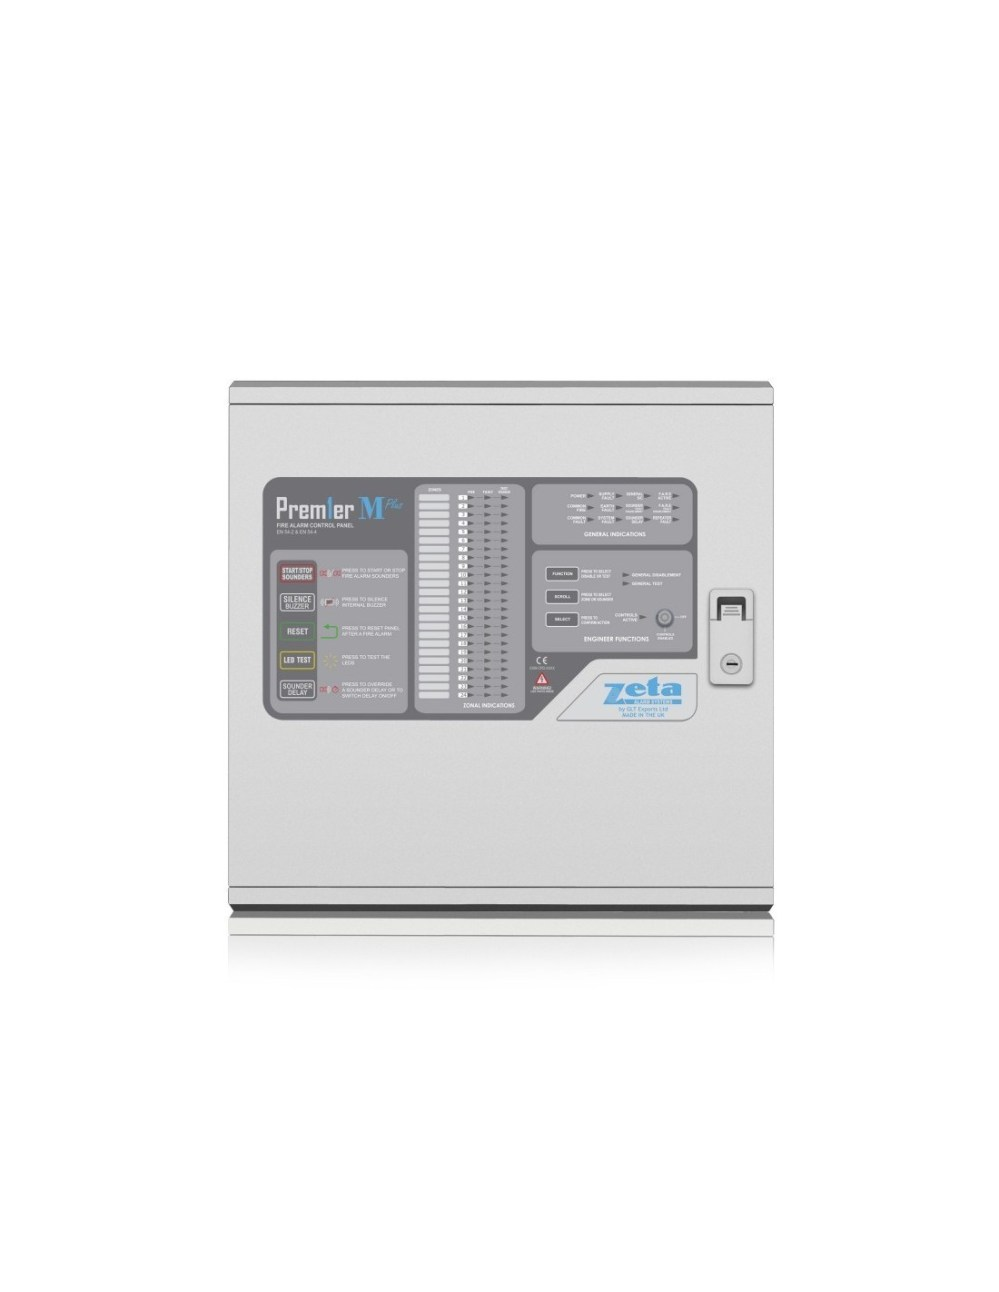 medium resolution of  premier m 16 zone panel the premier m plus 16 zone panel is the ideal